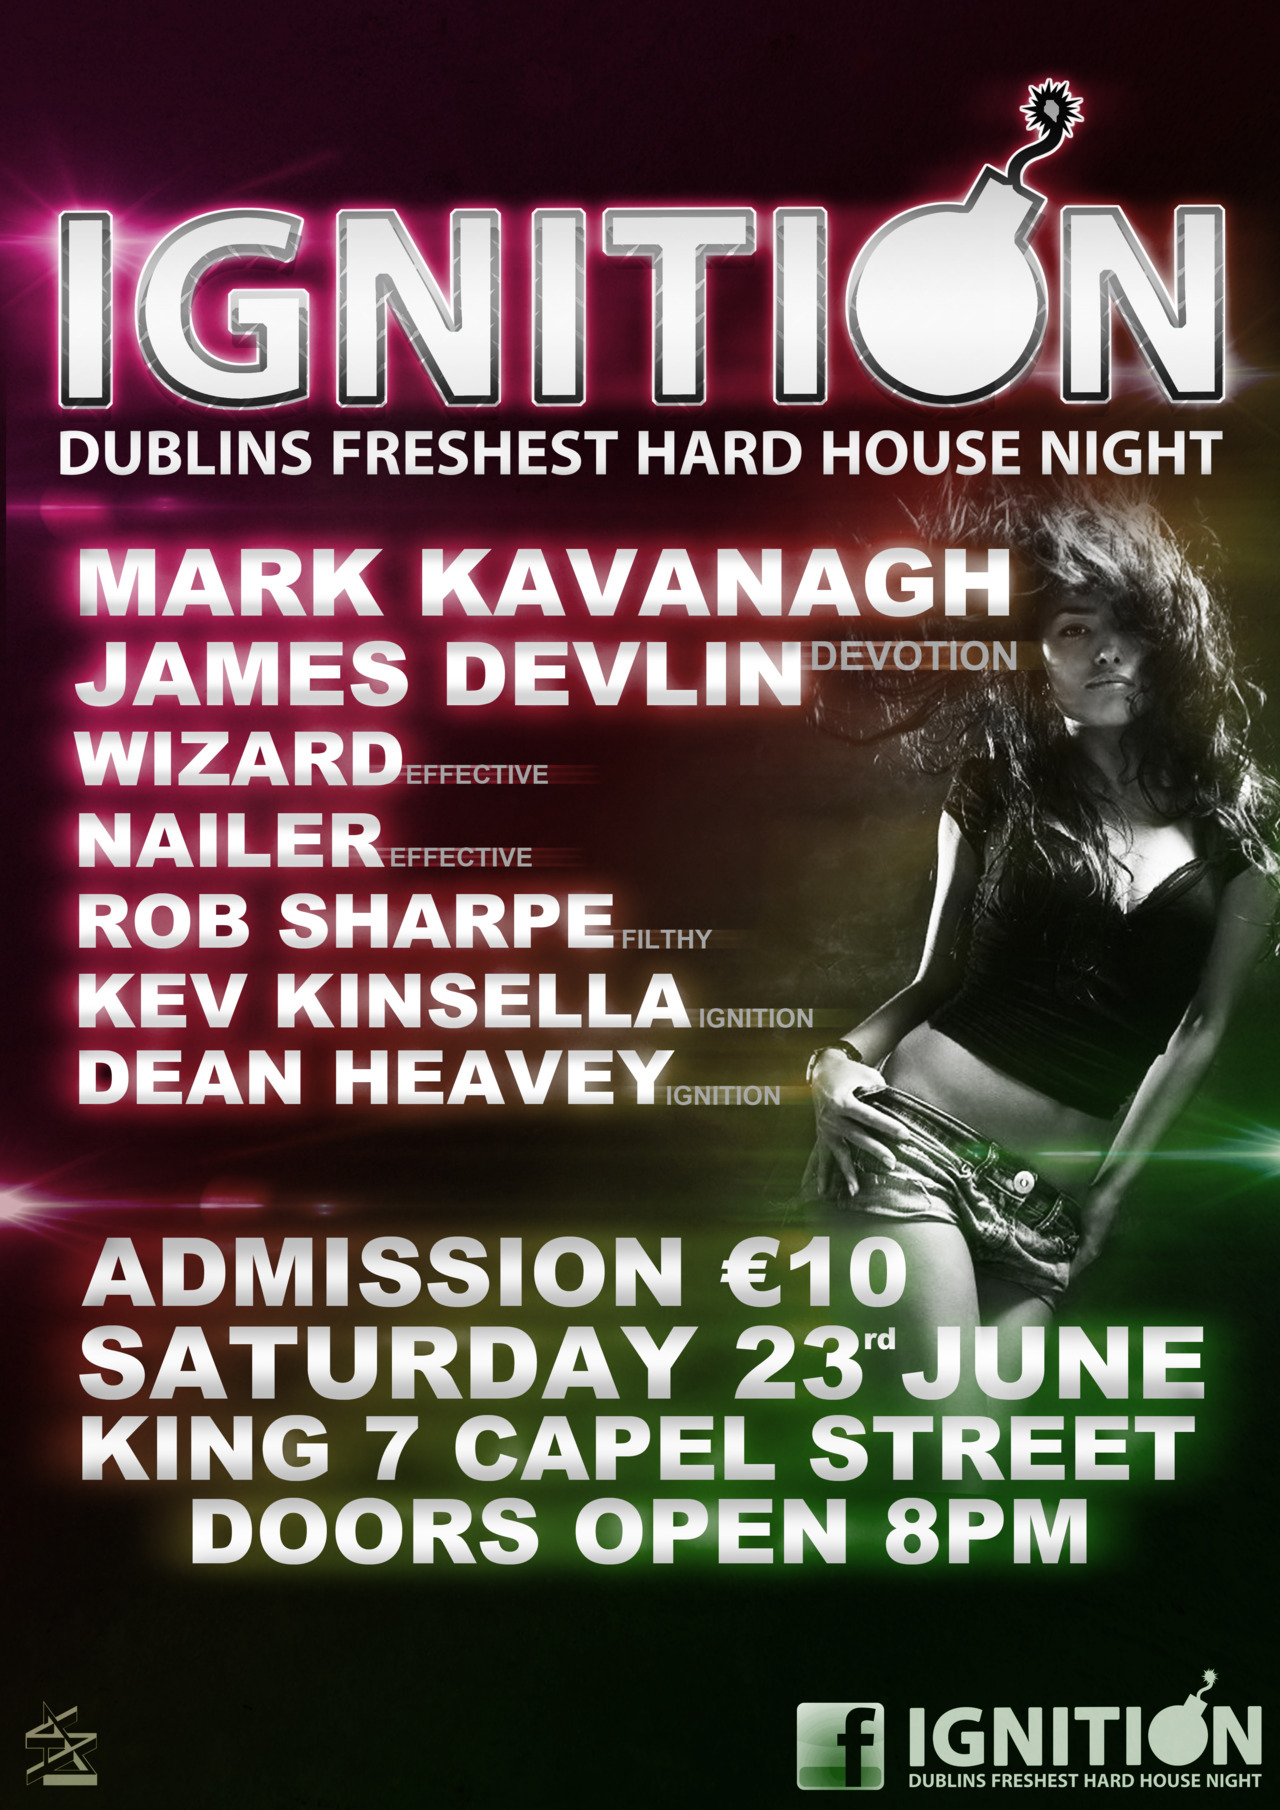 Poster for Ignition Clubnight, by myself and Paddy. Can't find it on facebook but will throw up a link when I do :) Dillon